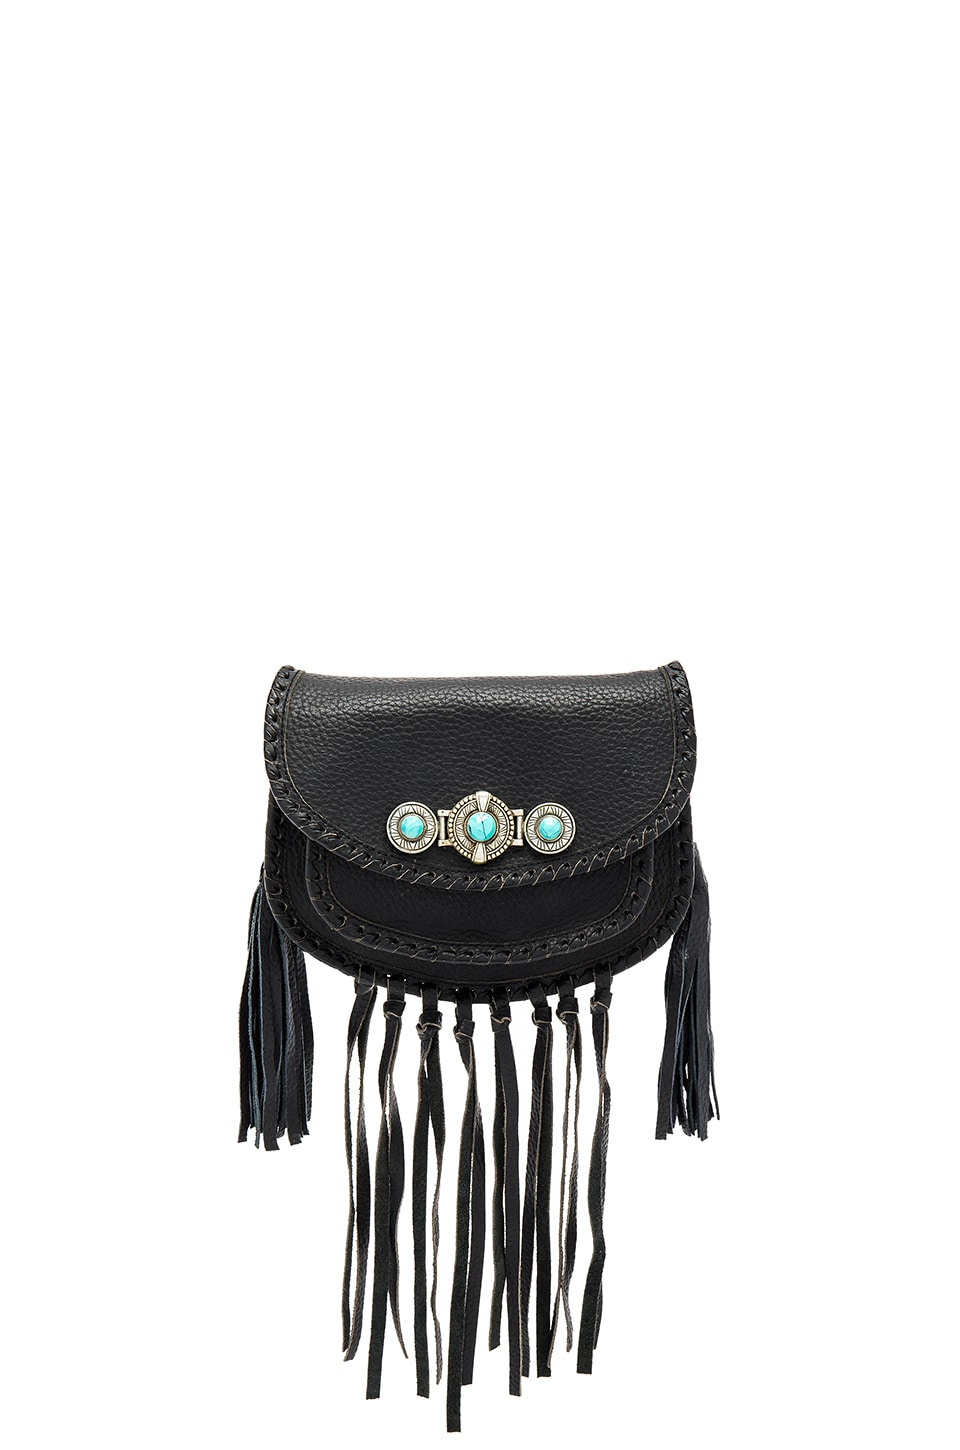 Cleobella Tanna Mini Saddle Bag in Black